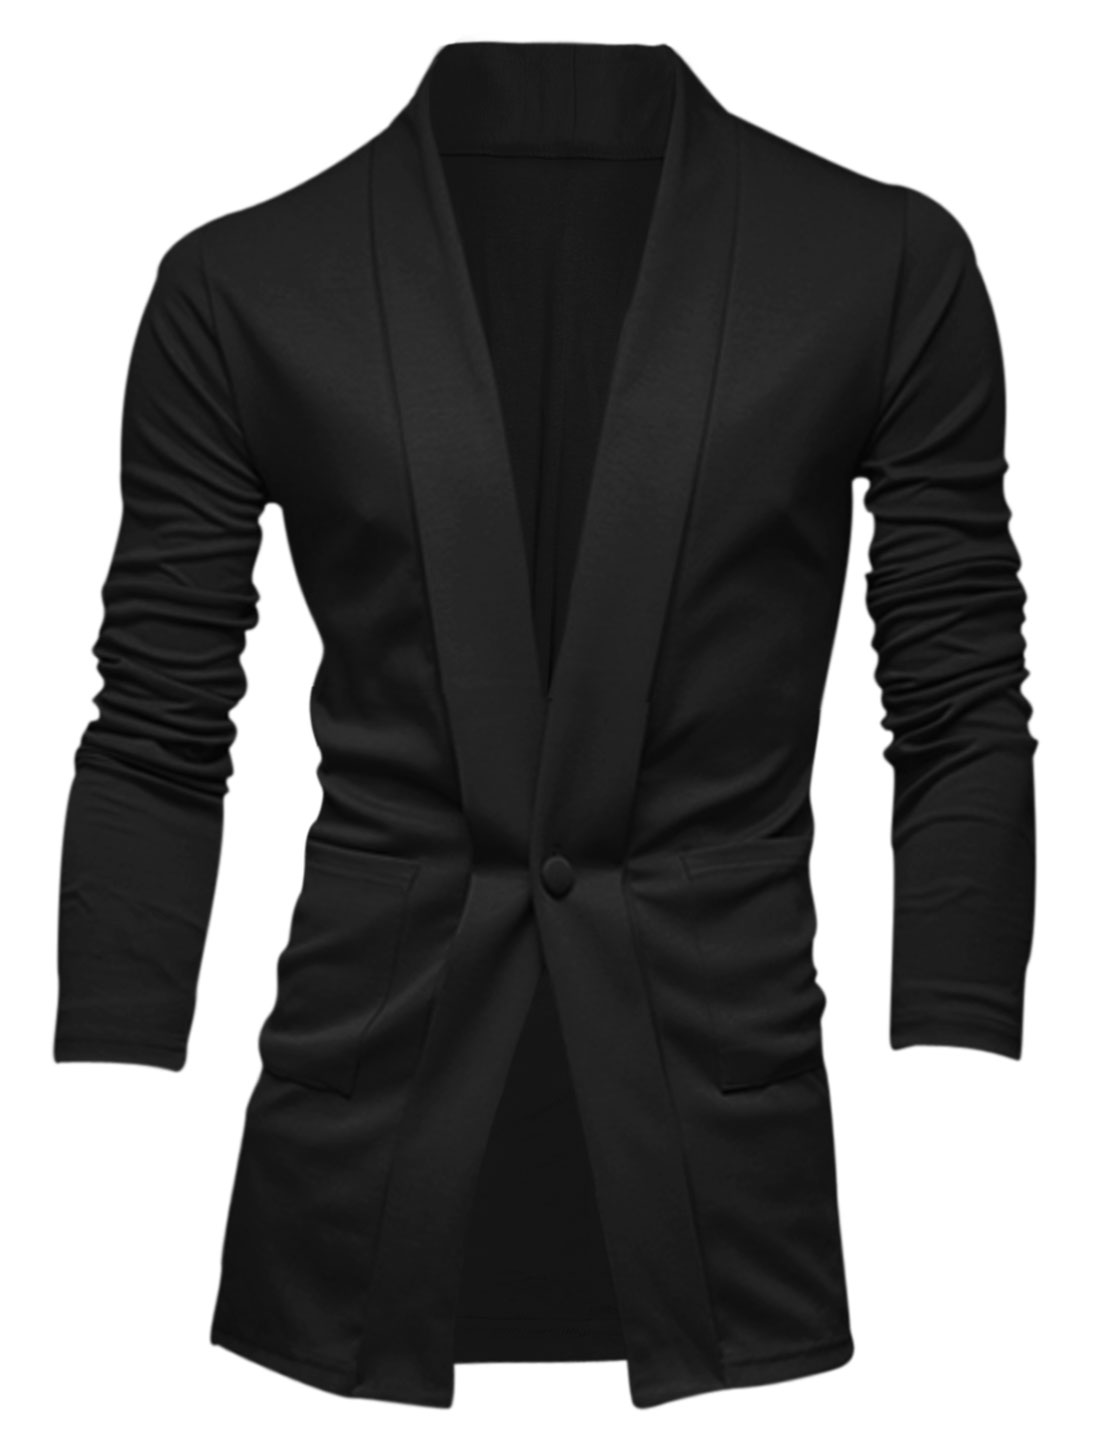 Men Shawl Collar One Button Two Front Pockets Leisure Cardigan Black L